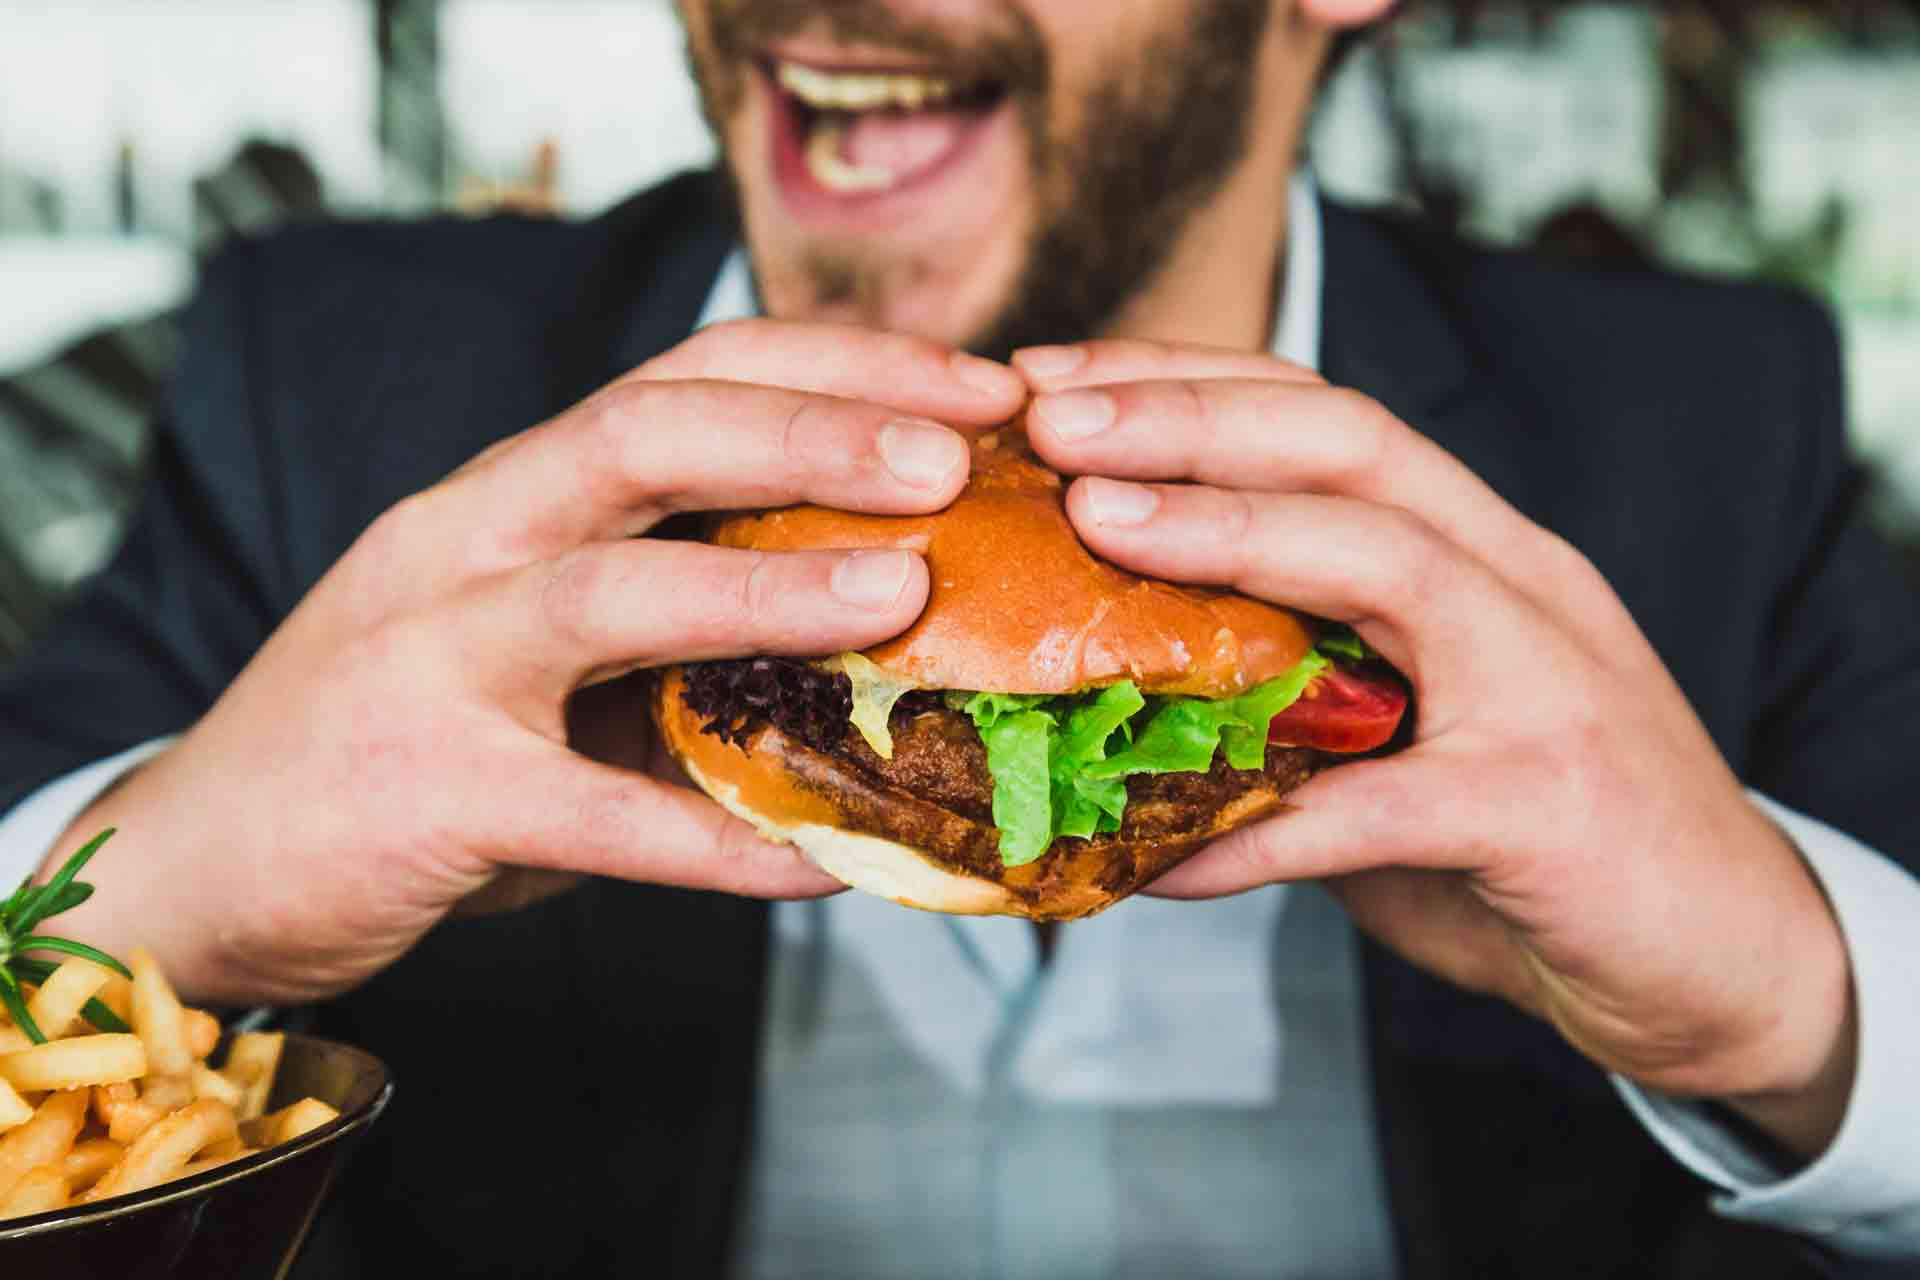 Hunger vs Appetite: What's the Difference and How to Eat For Health